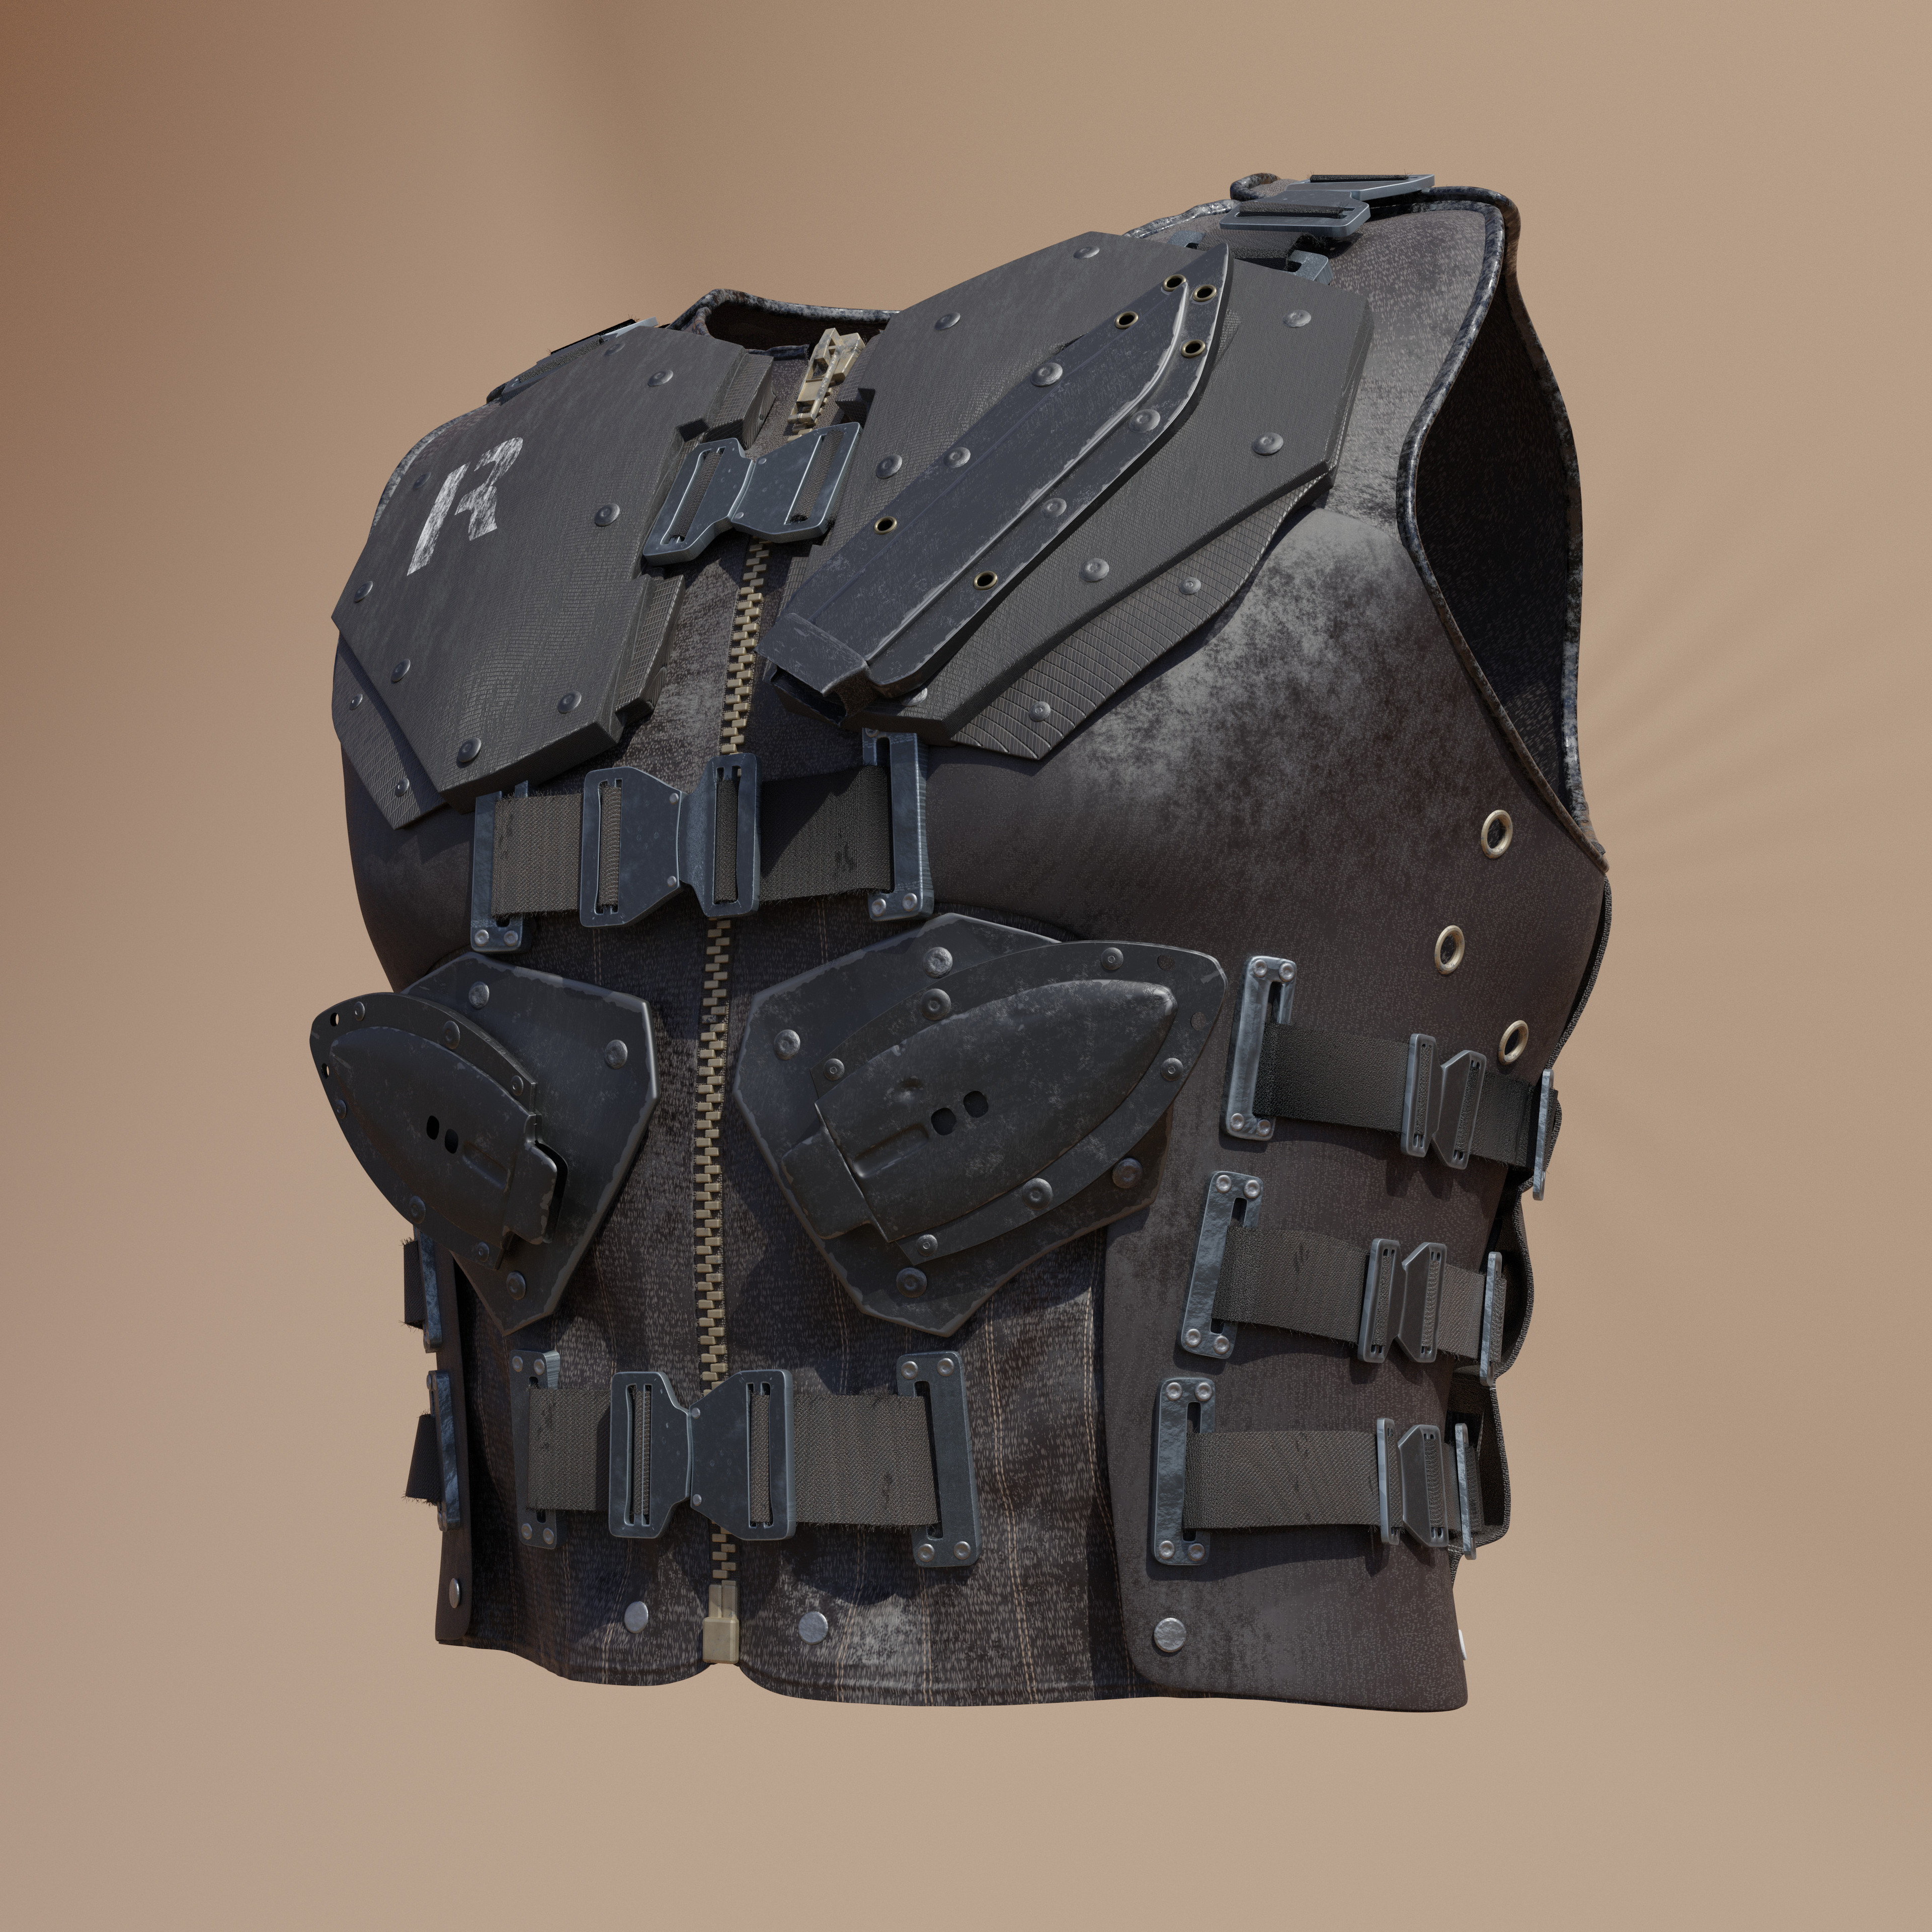 Final Front, including particles on Belt and some sculptured damage.